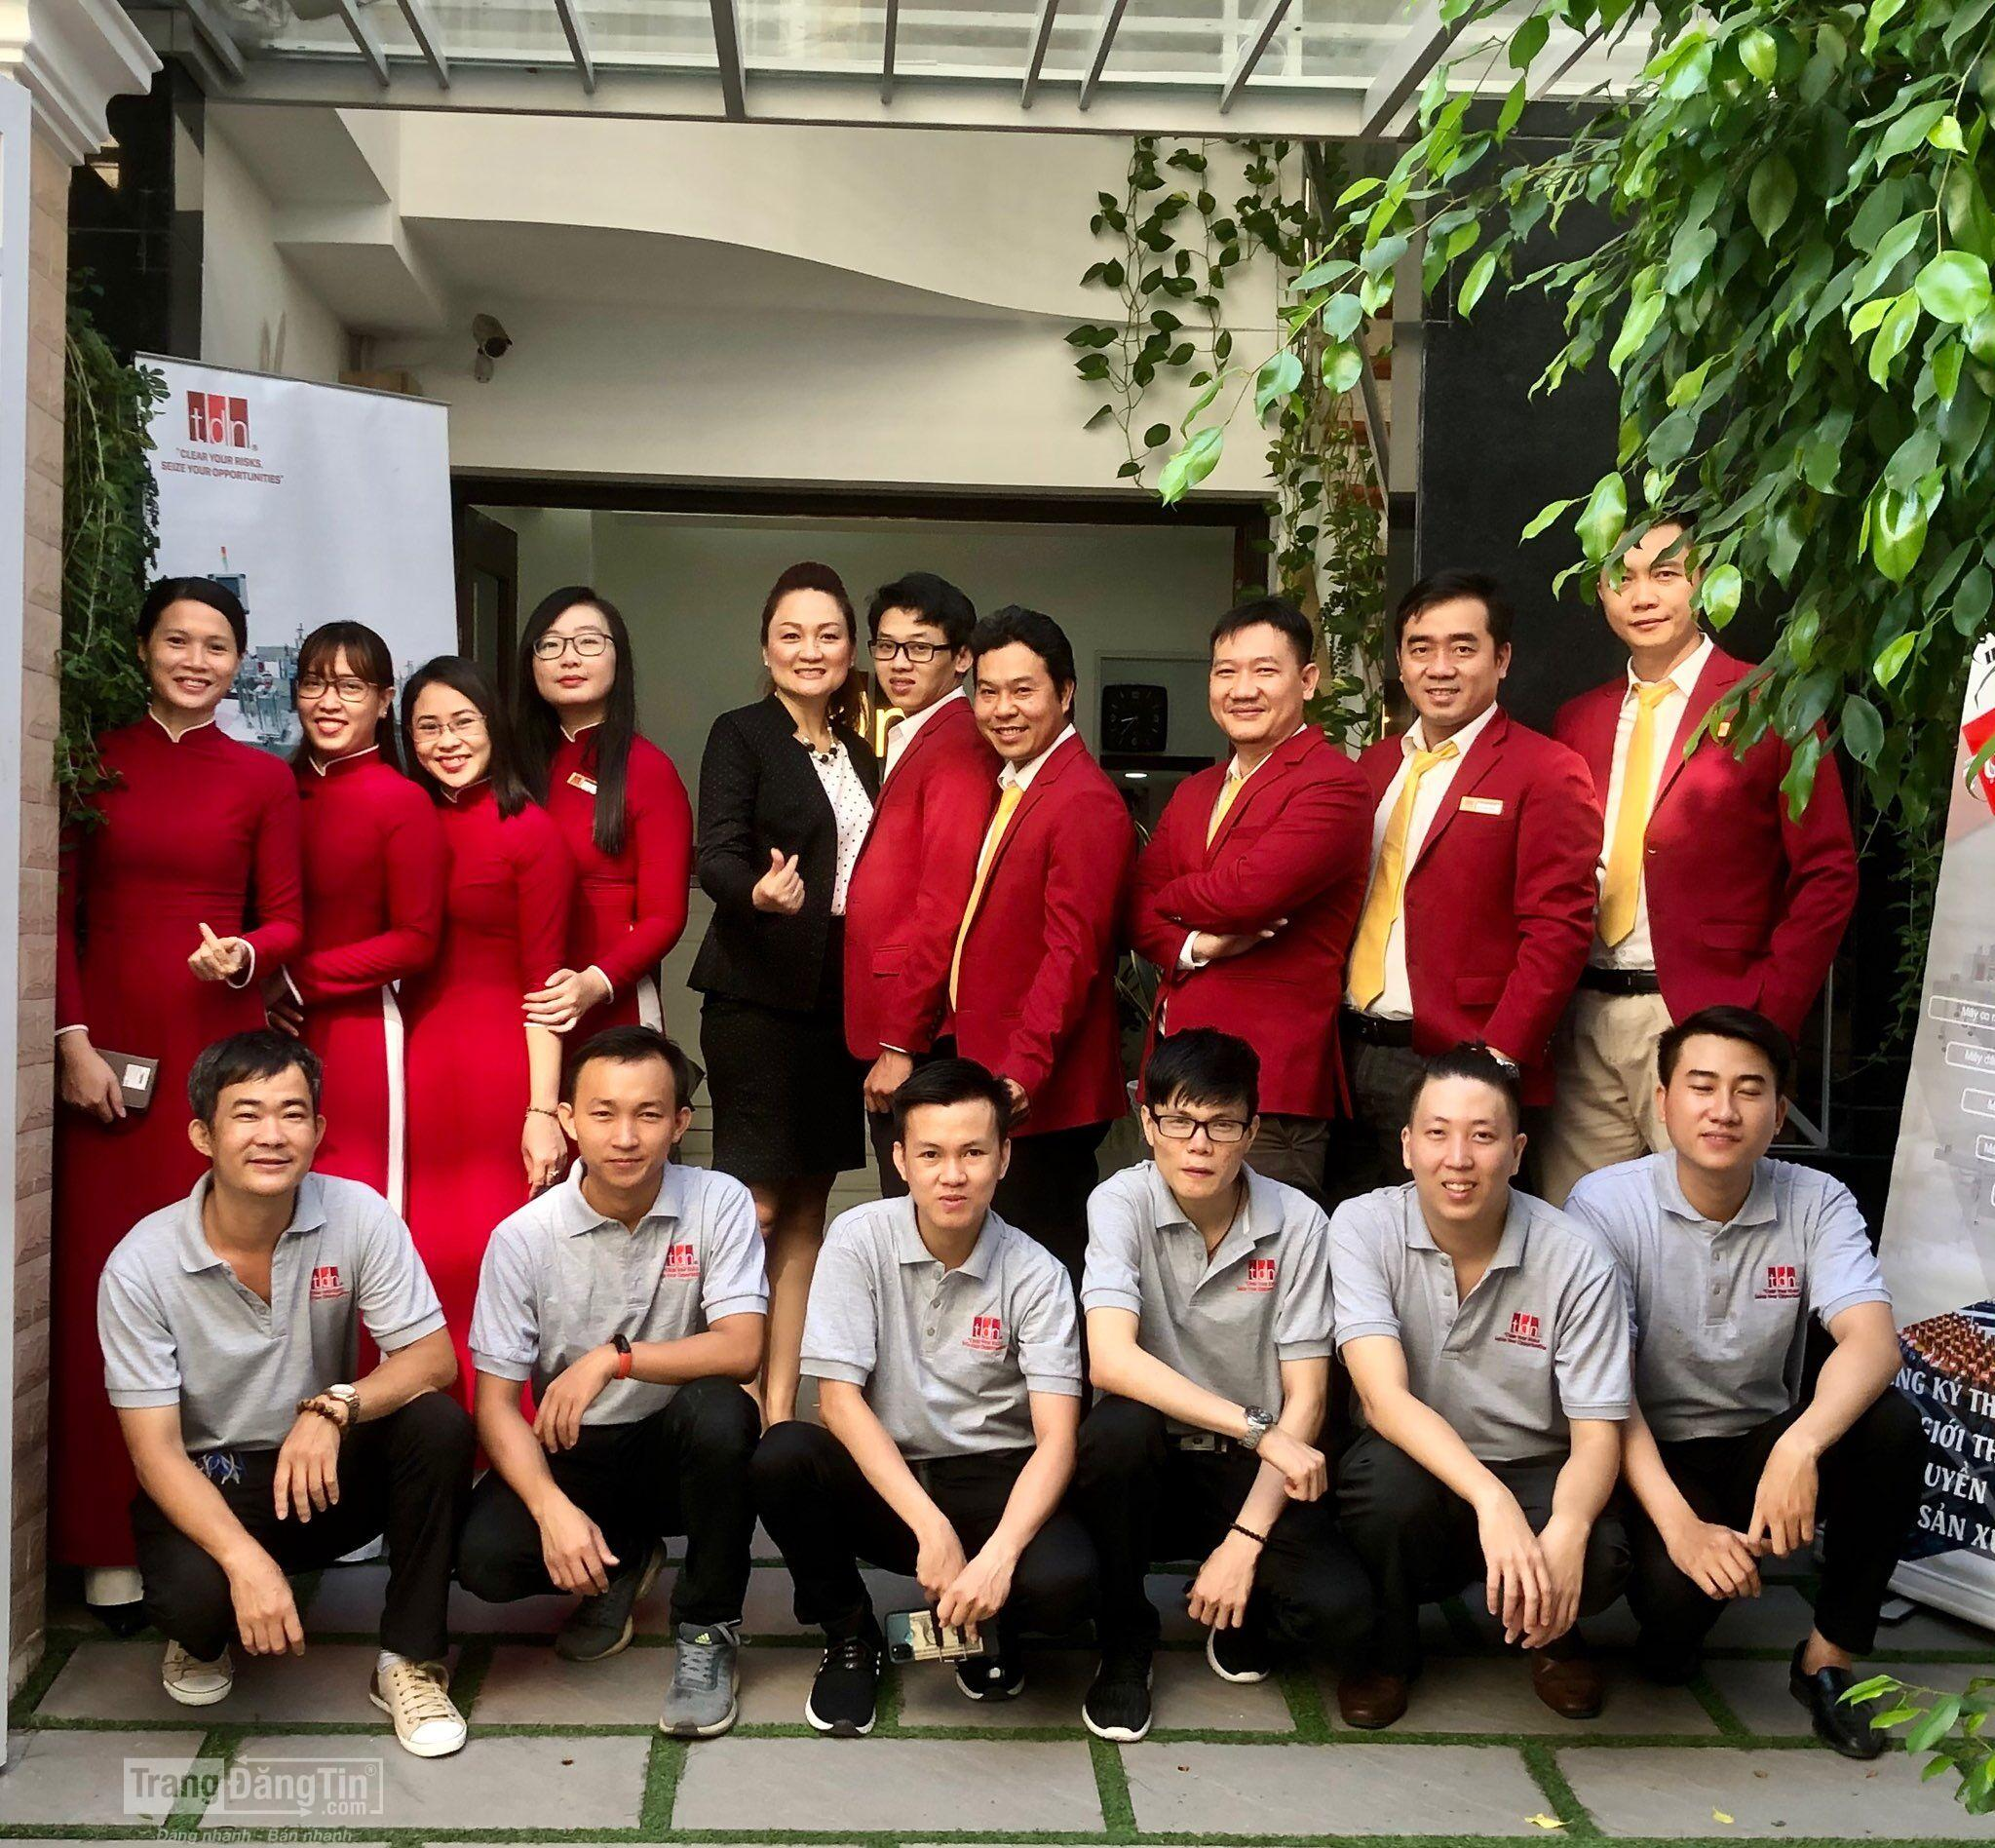 TUYỂN DỤNG SALE MANAGER (GẤP)